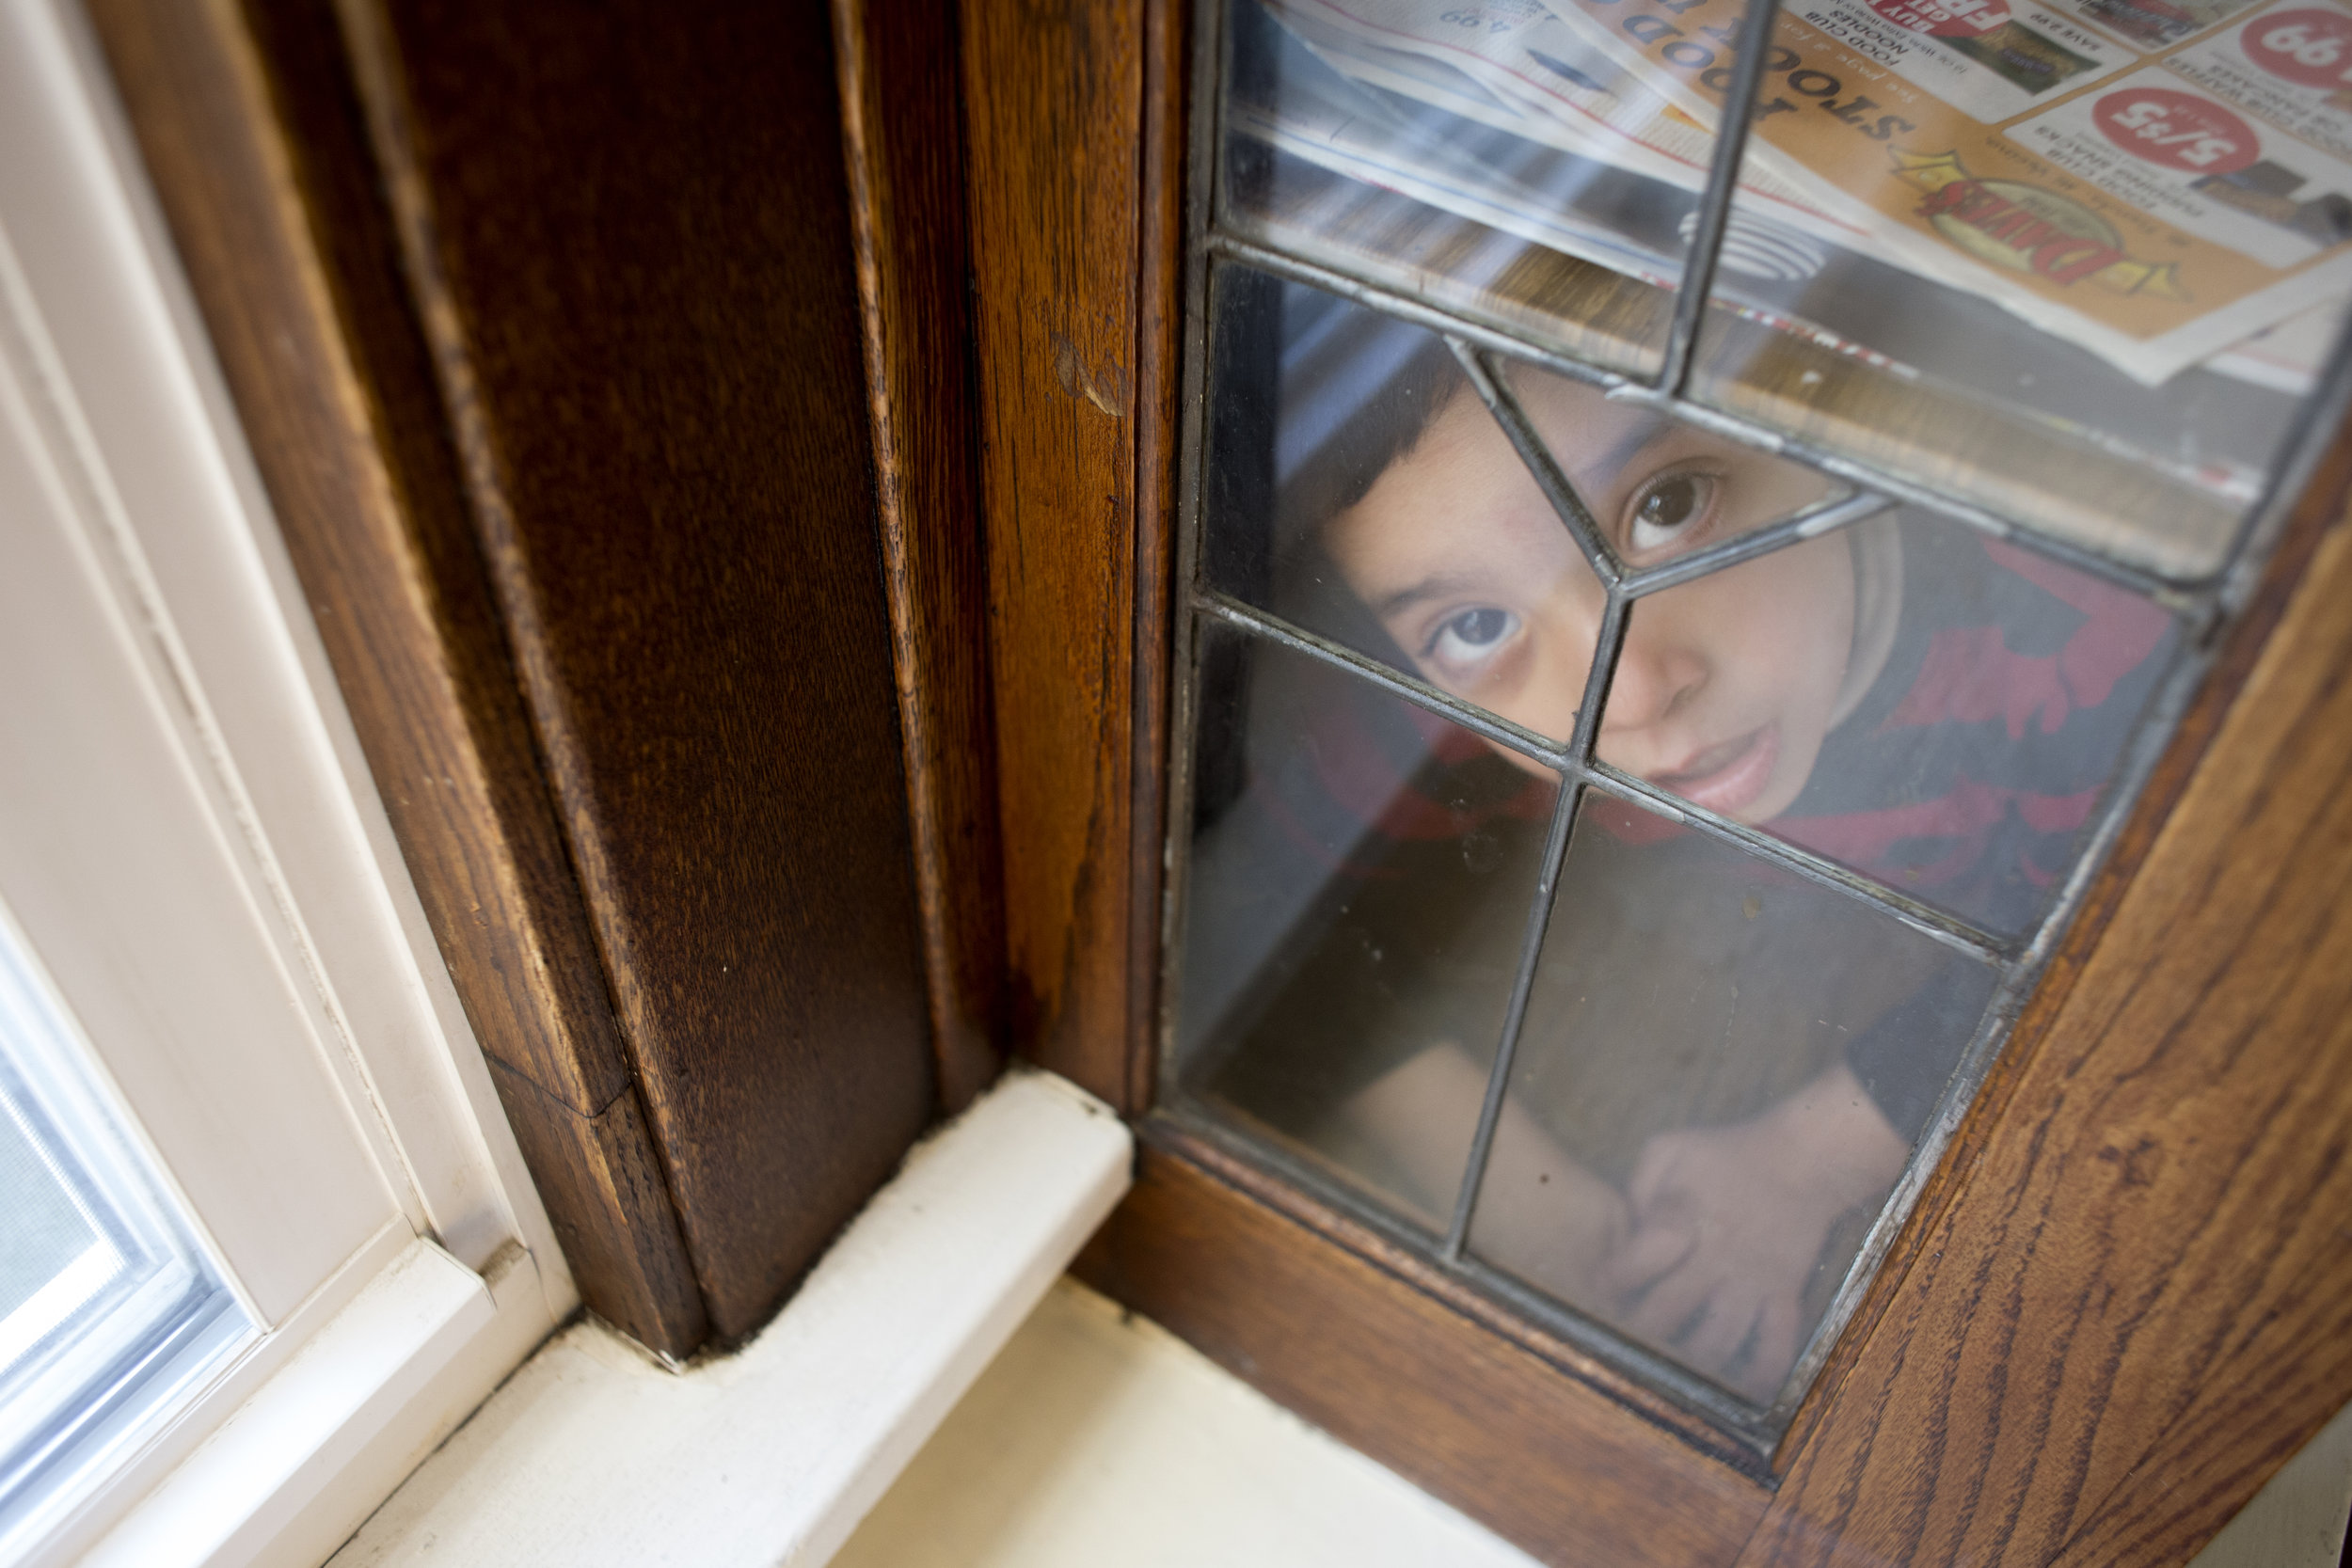 Mohamad indulges his preoccupation with cramming into small spaces.